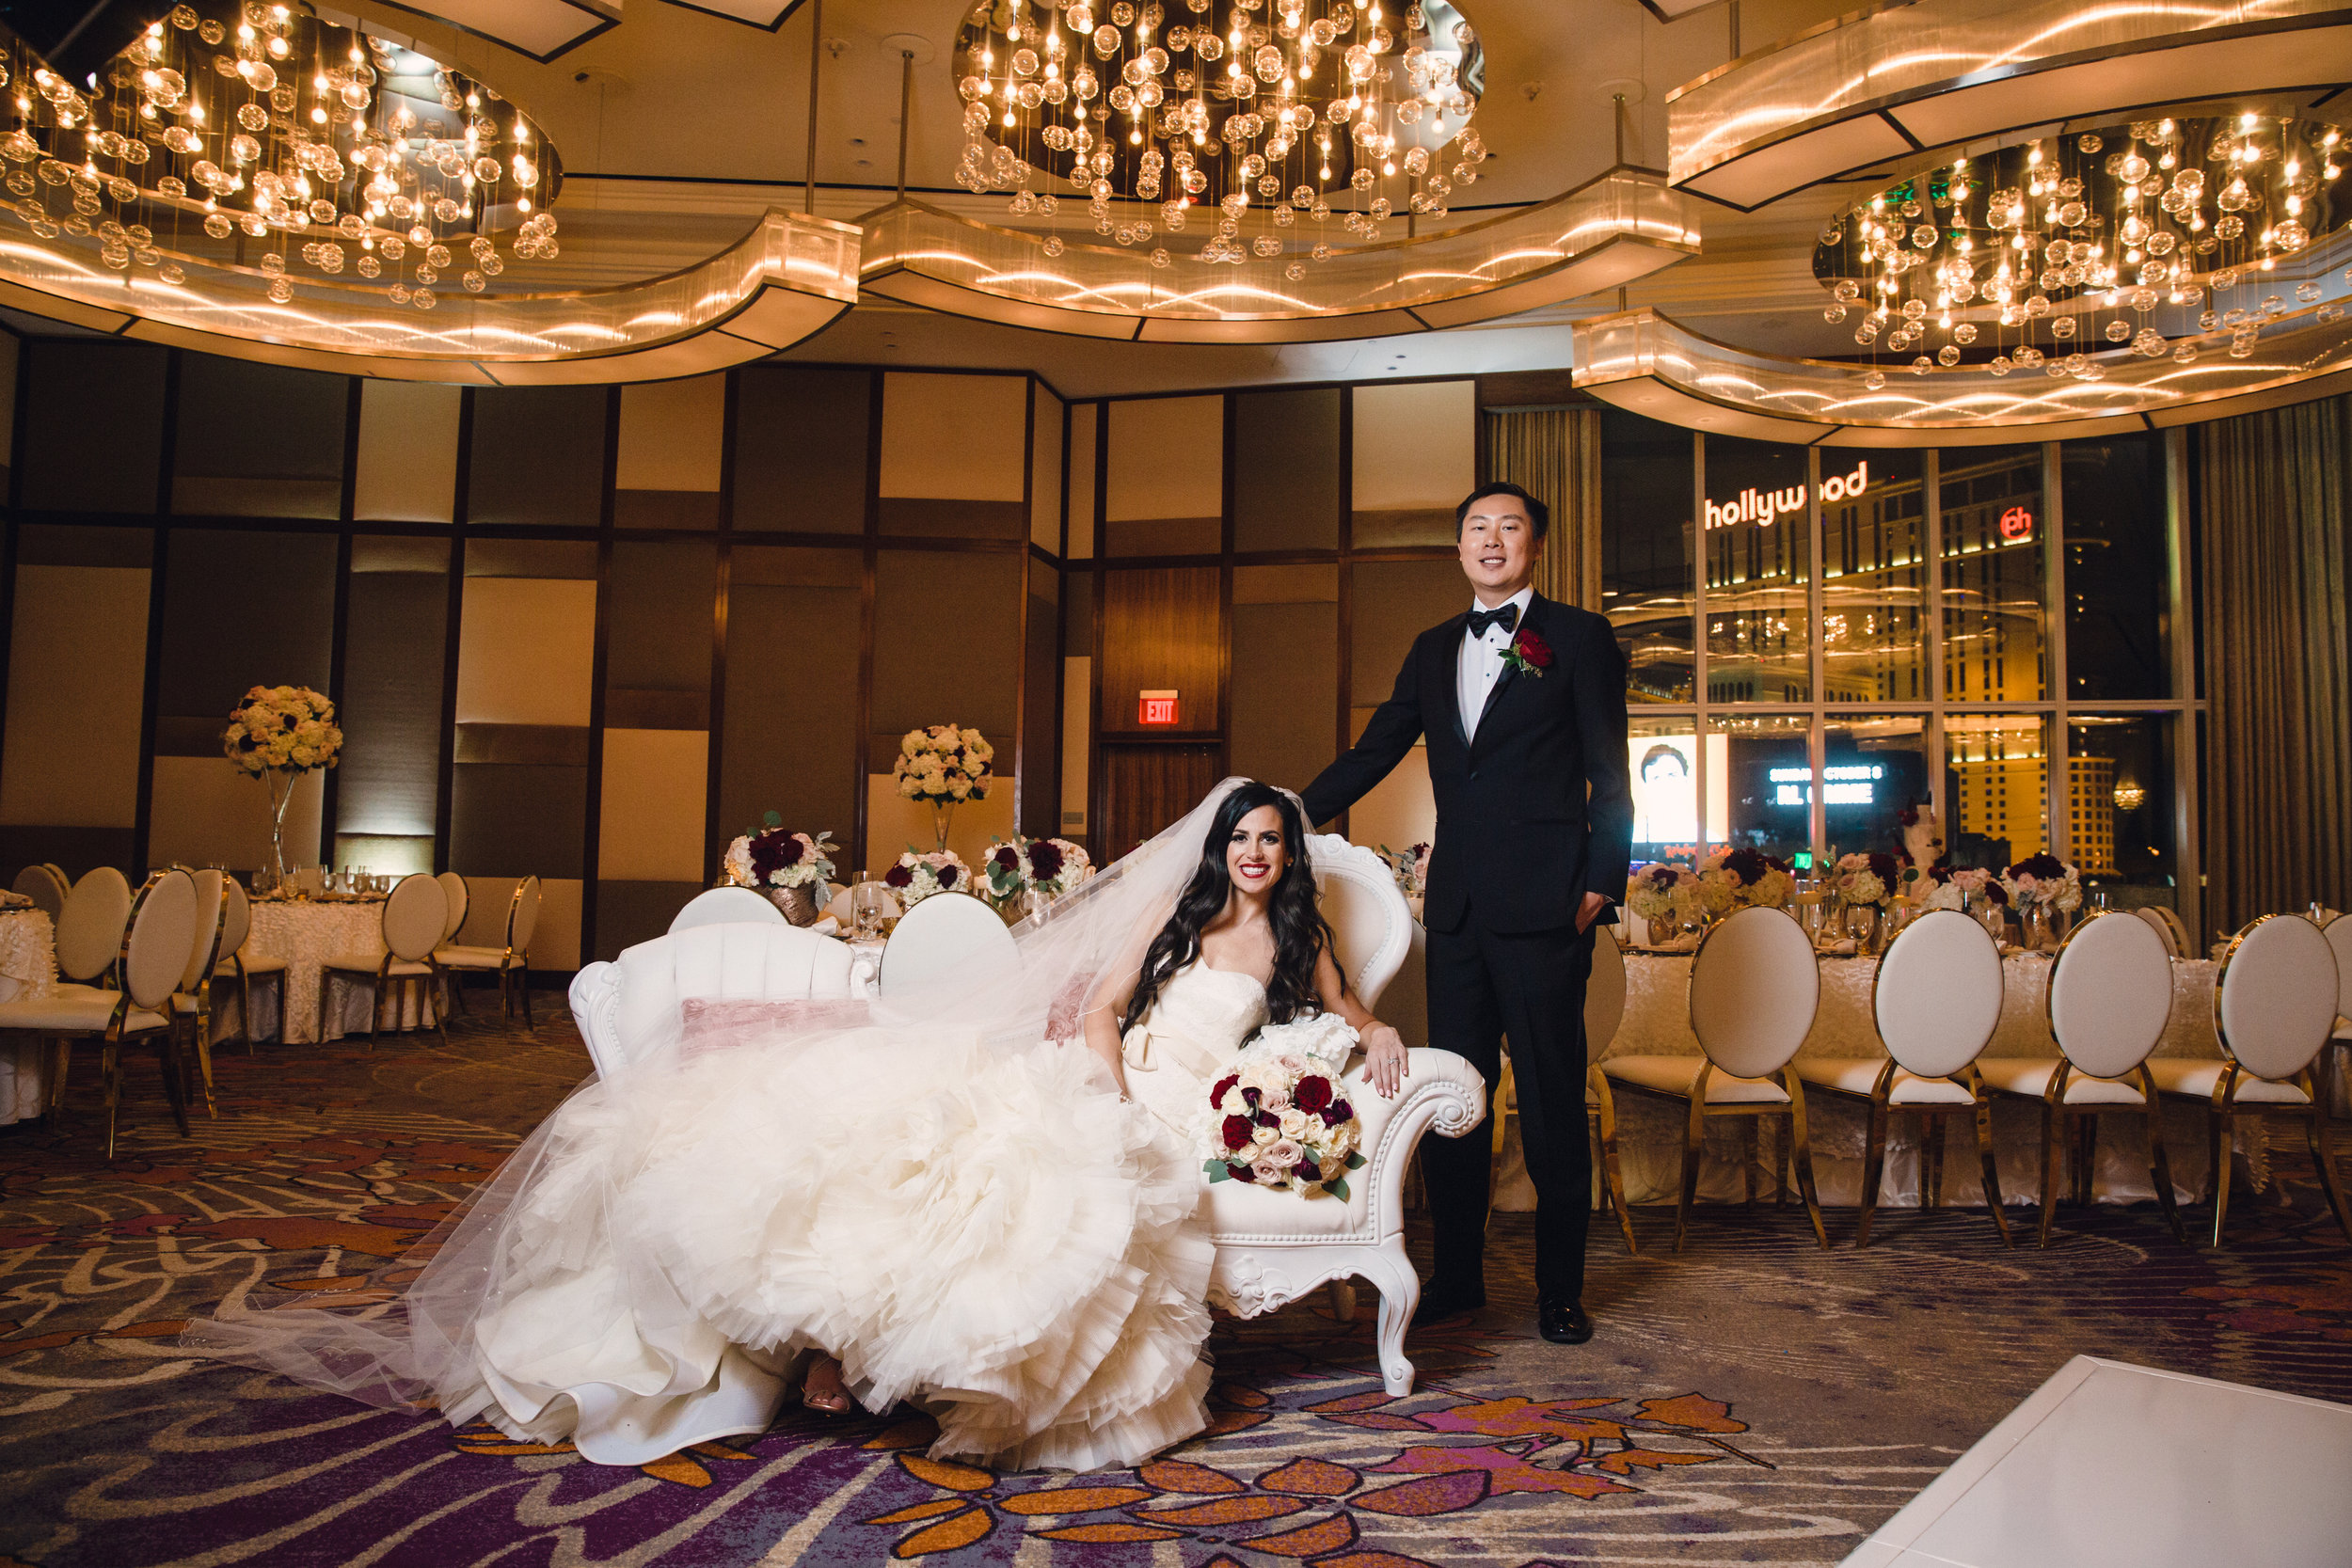 Bride and groom in ballroom.Luxury wedding at the Mandarin Oriental with a color scheme of white, blush, and pops of wine red produced by Las Vegas Wedding Planner Andrea Eppolito with photos by Stephen Salazar Photography.